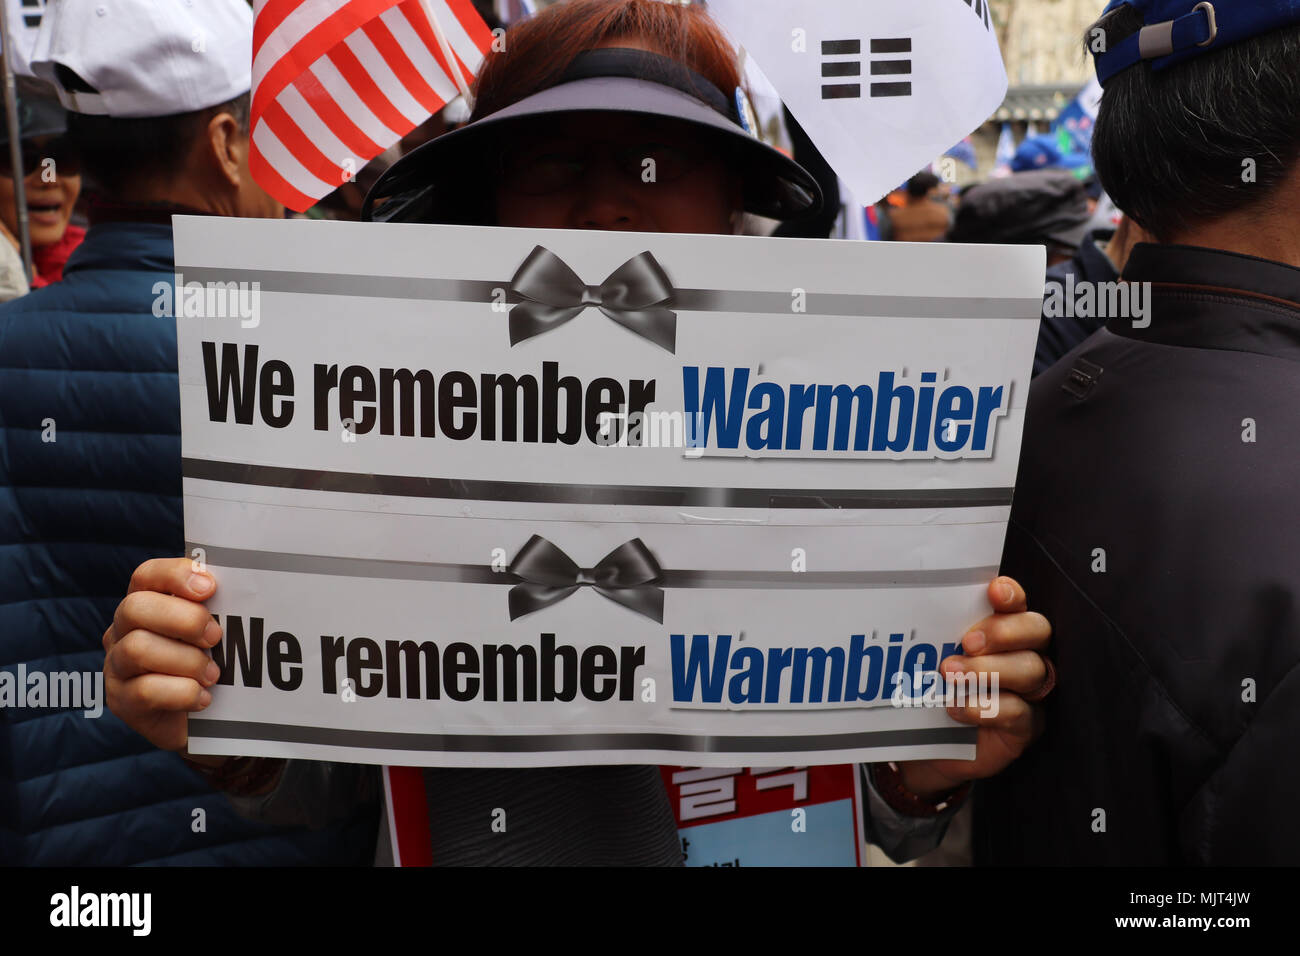 Woman holds a 'We remember Warmbier' sign at a political rally in Seoul, South Korea on March 31, 2018, with US flag in background, for unification. - Stock Image